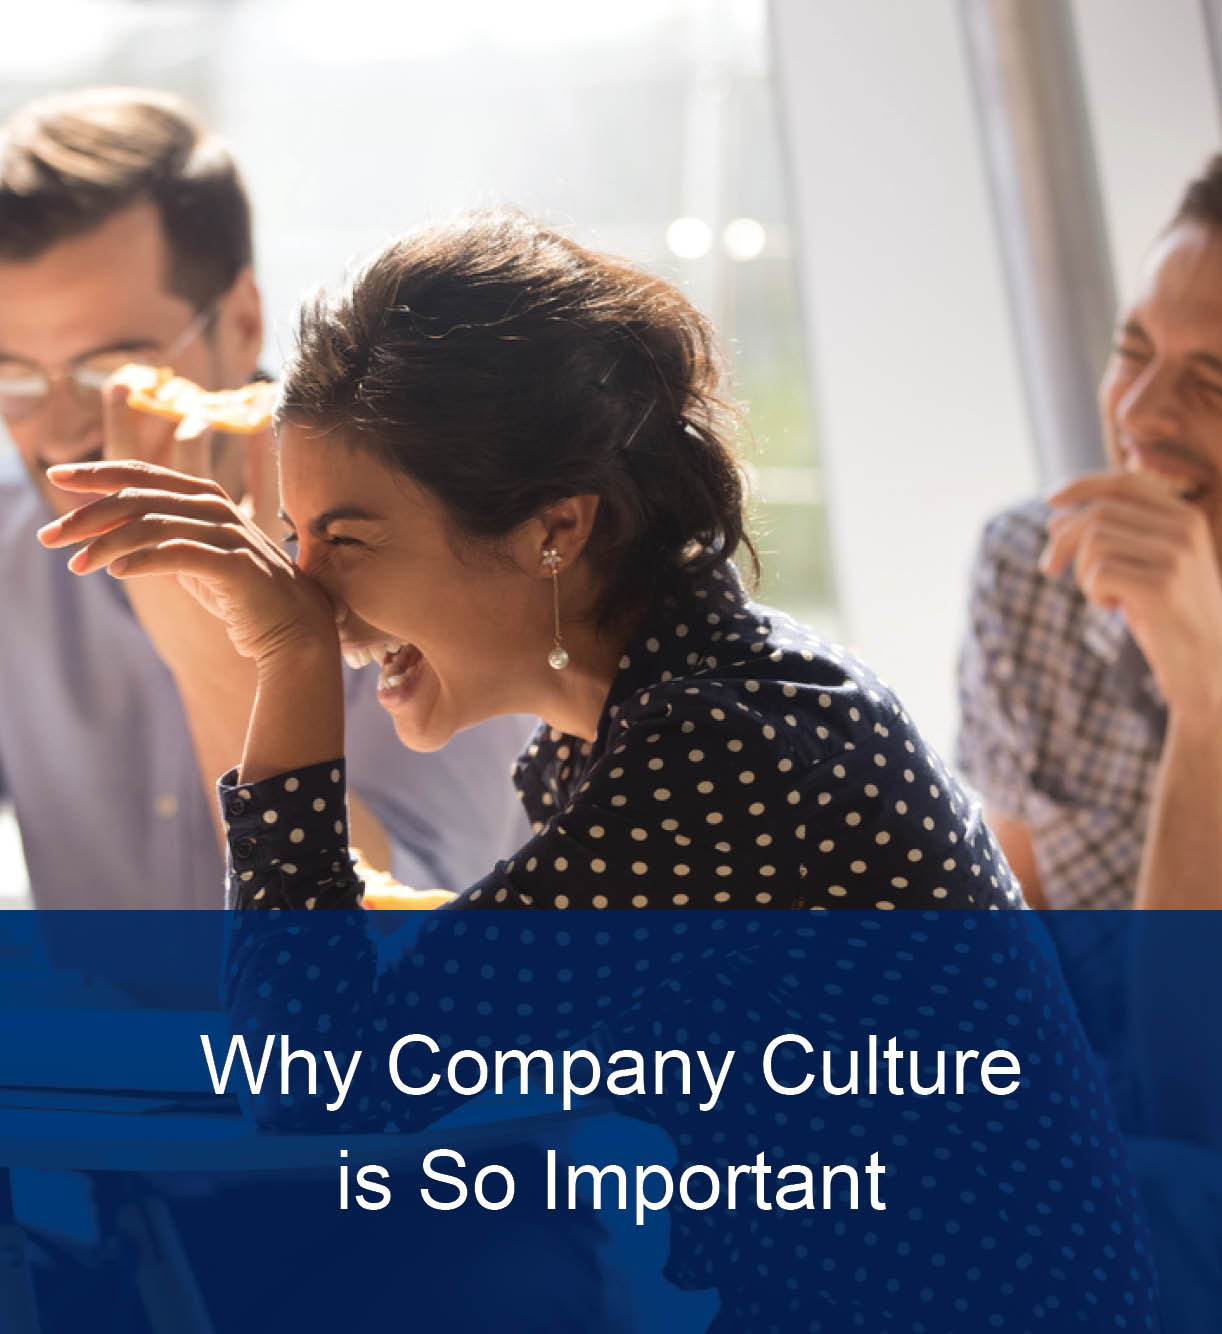 web thumbnail for company culture article